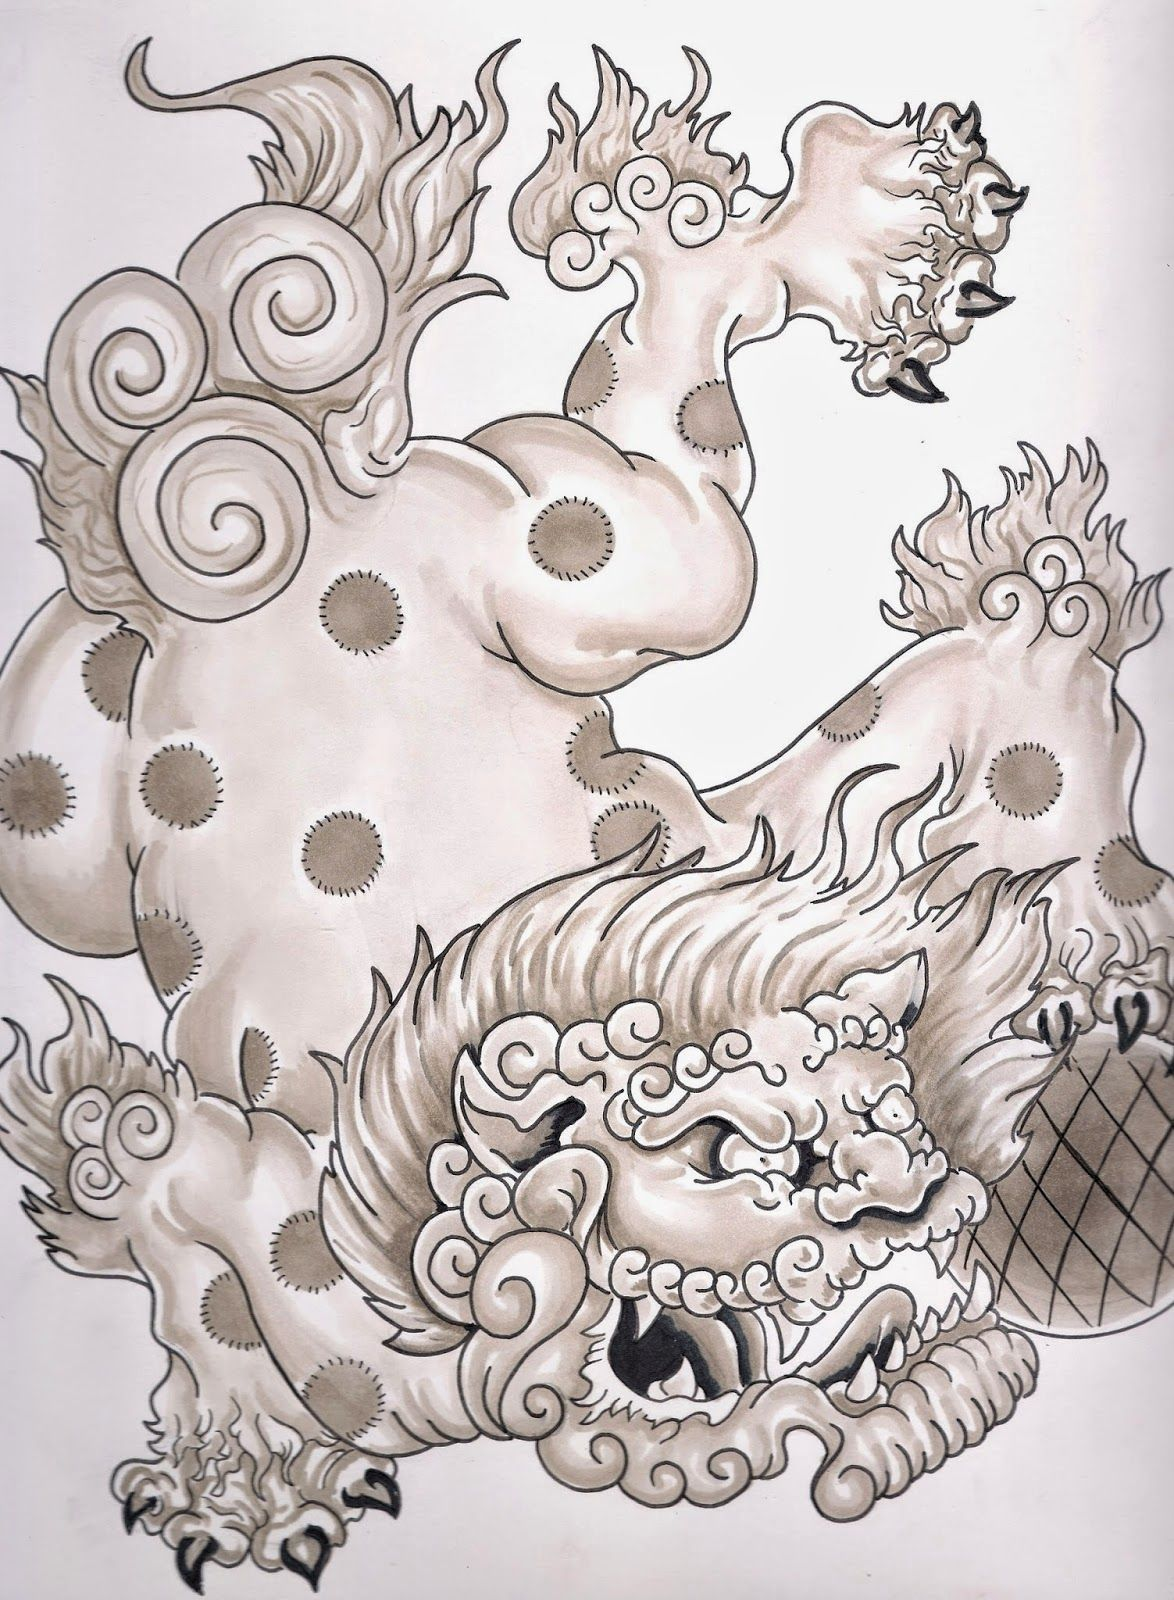 28 chinese foo dog tattoo designs image gallery shi for Eight ball tattoo removal